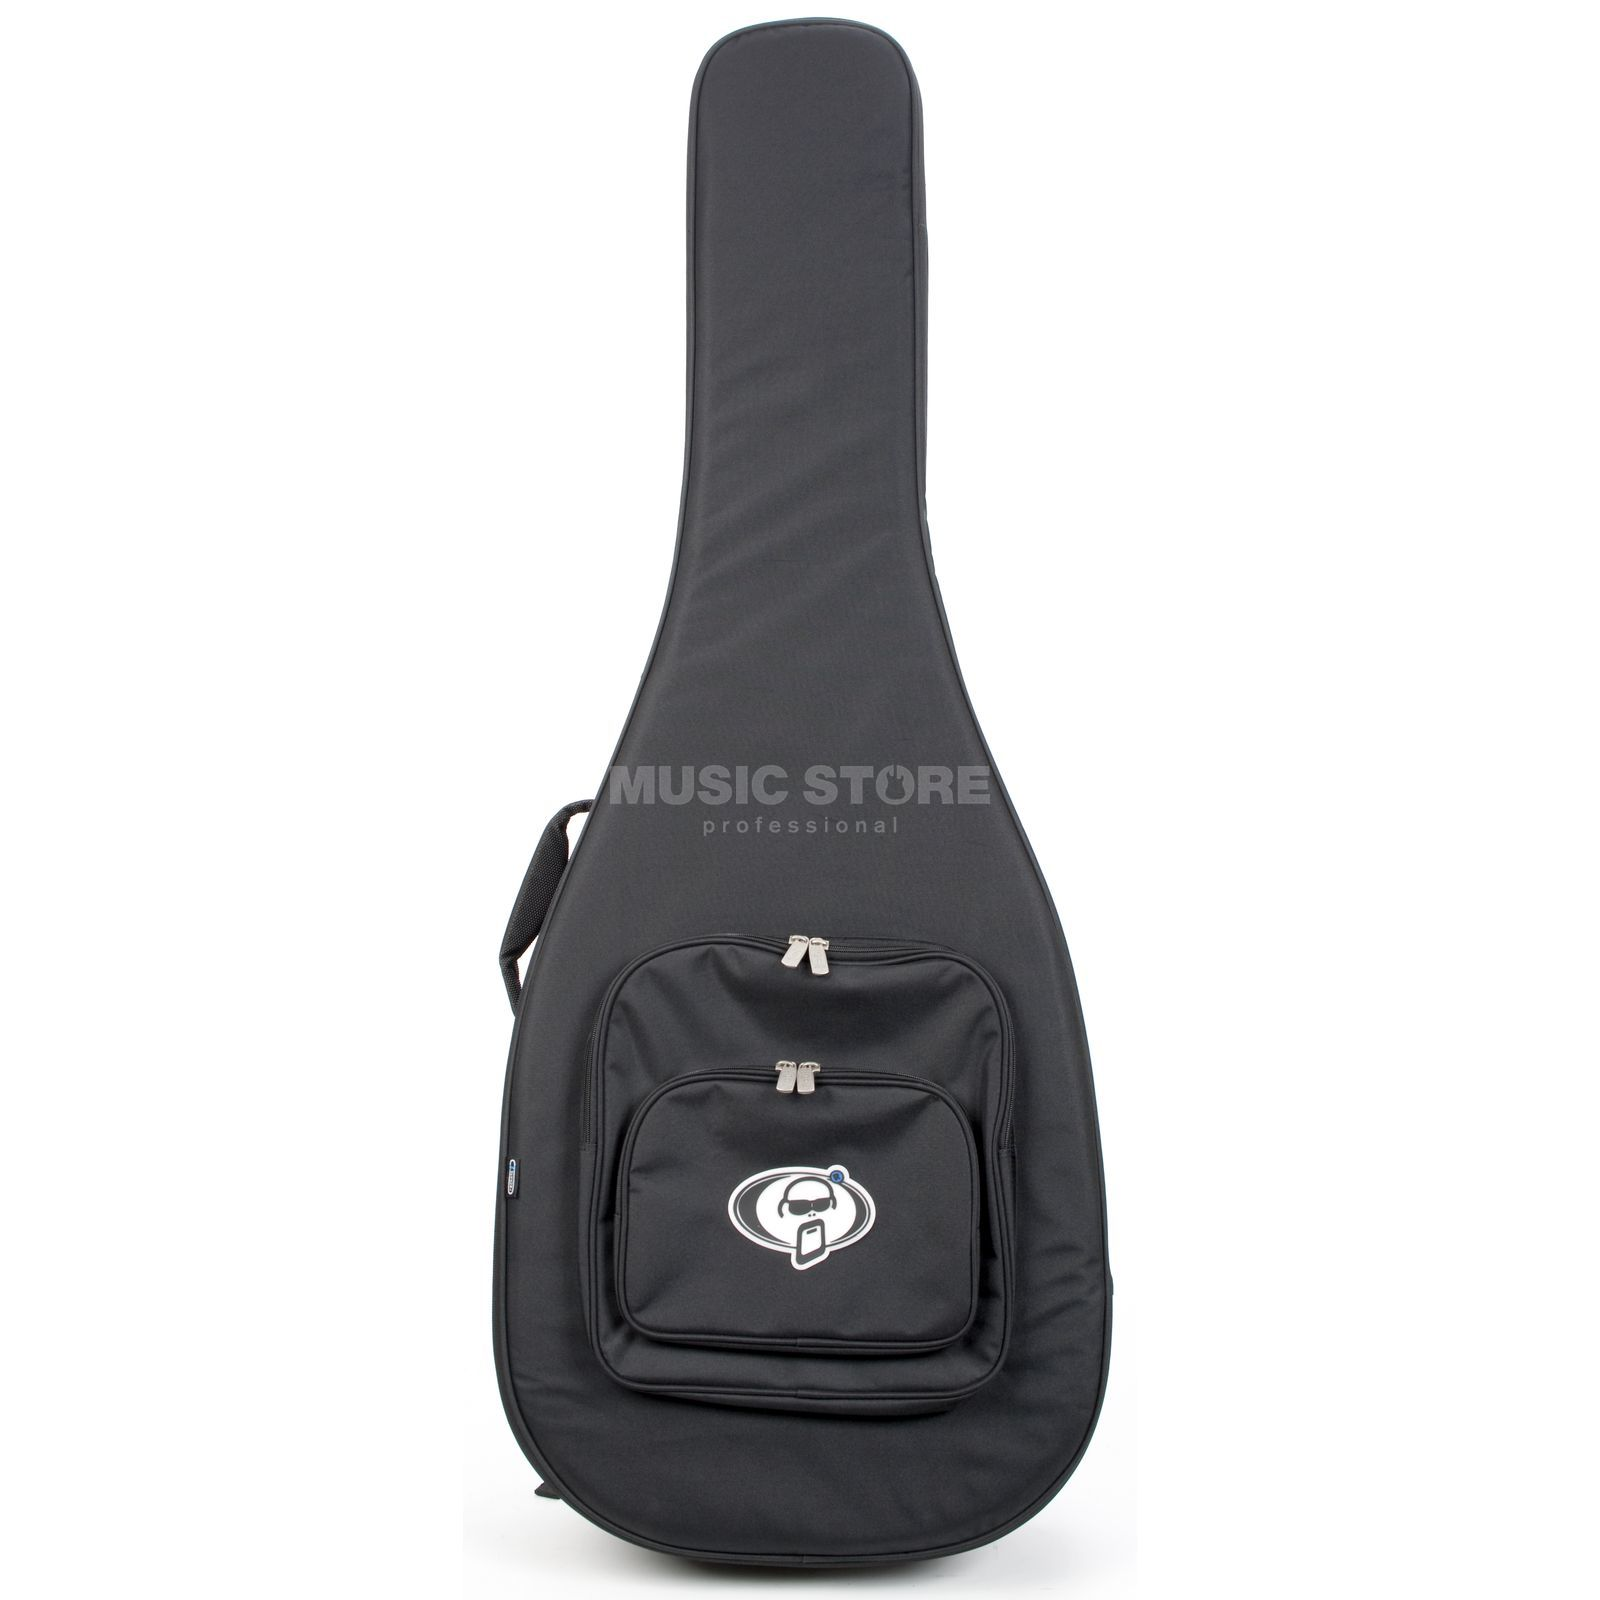 Protection Racket Etui basse acoustique Std. 7054  Image du produit